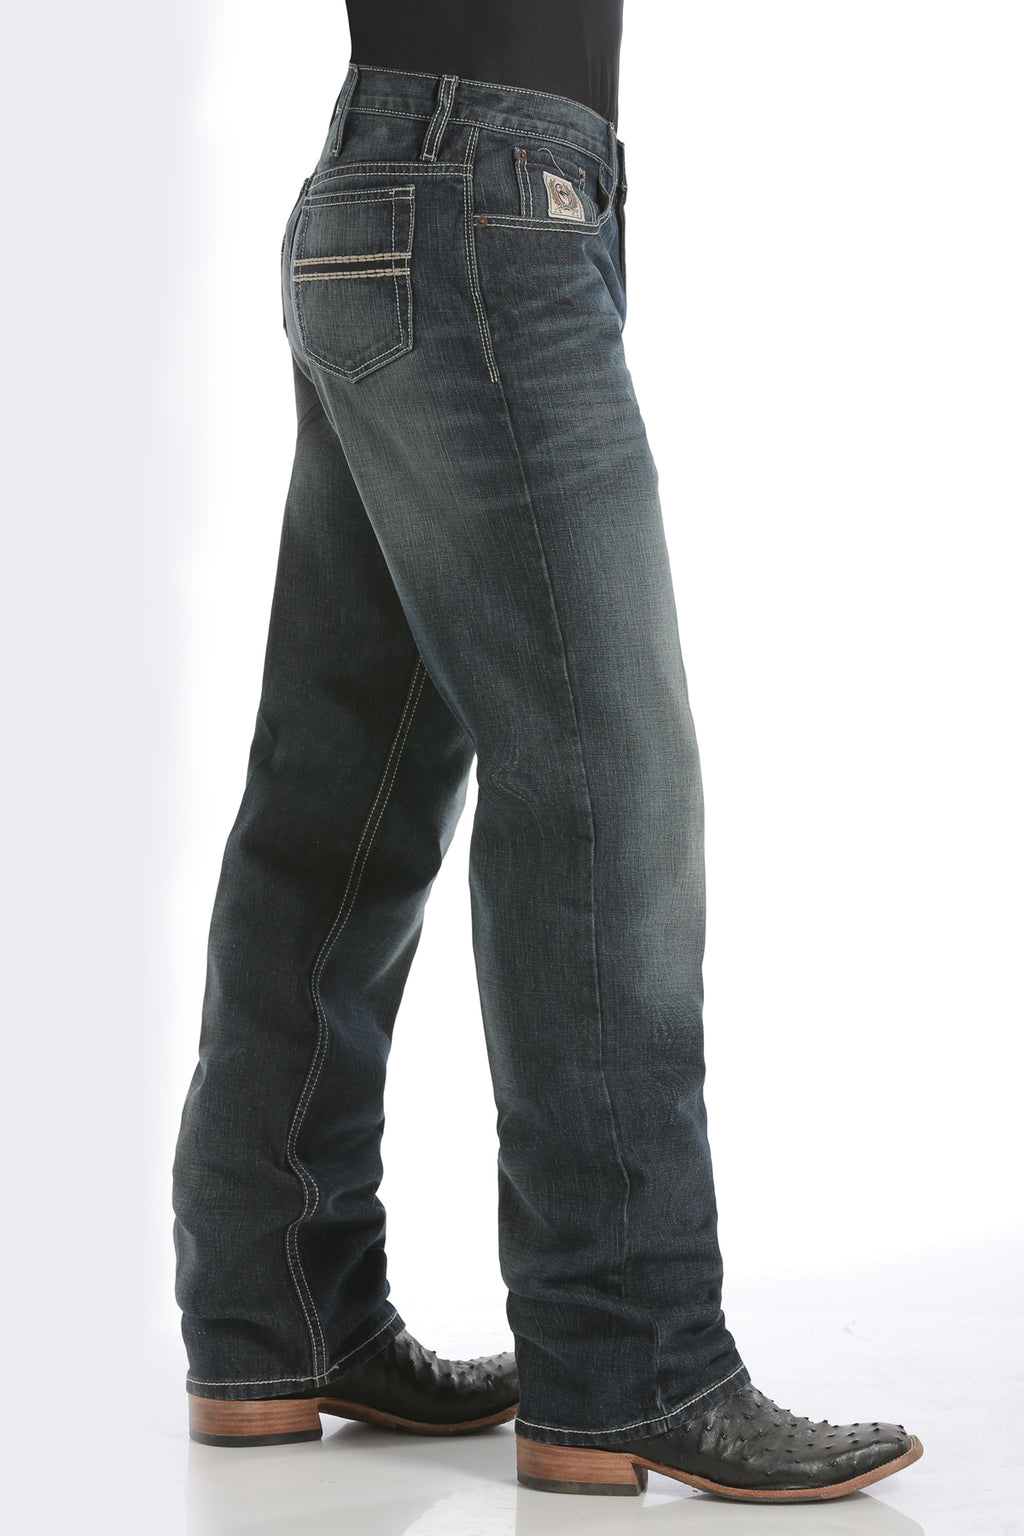 CINCH Men's Relaxed Fit White Label Dark Stonewash Jeans